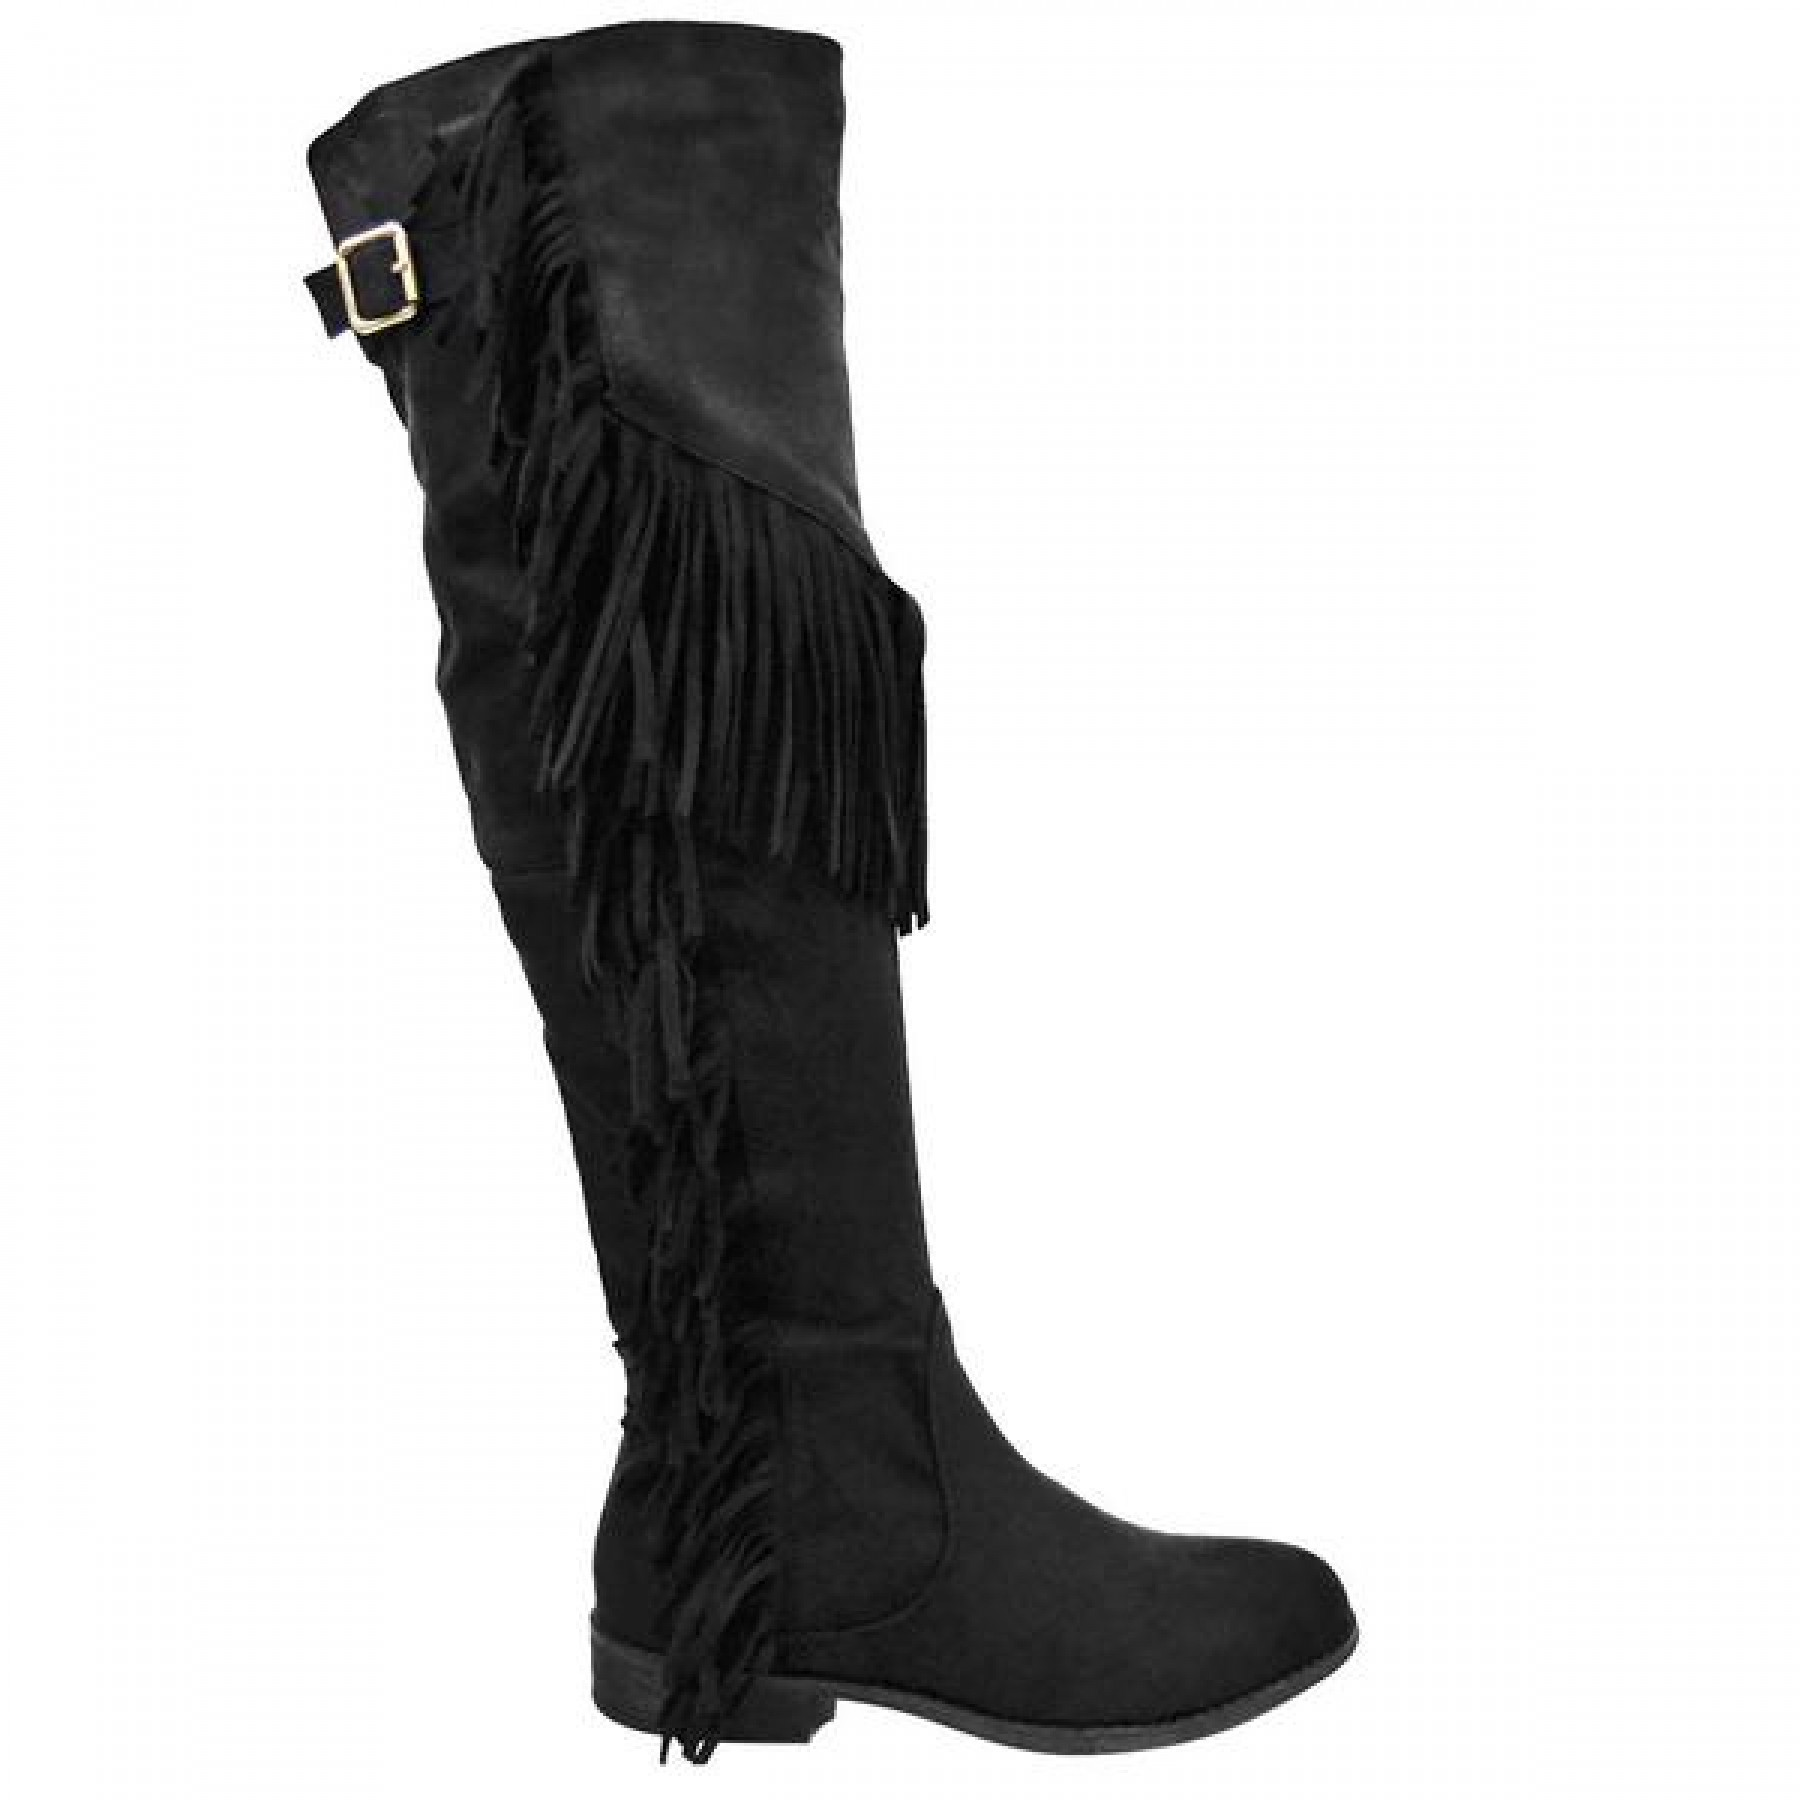 Women's Black Oksana-65 Knee-High Boot with Fringed Sides